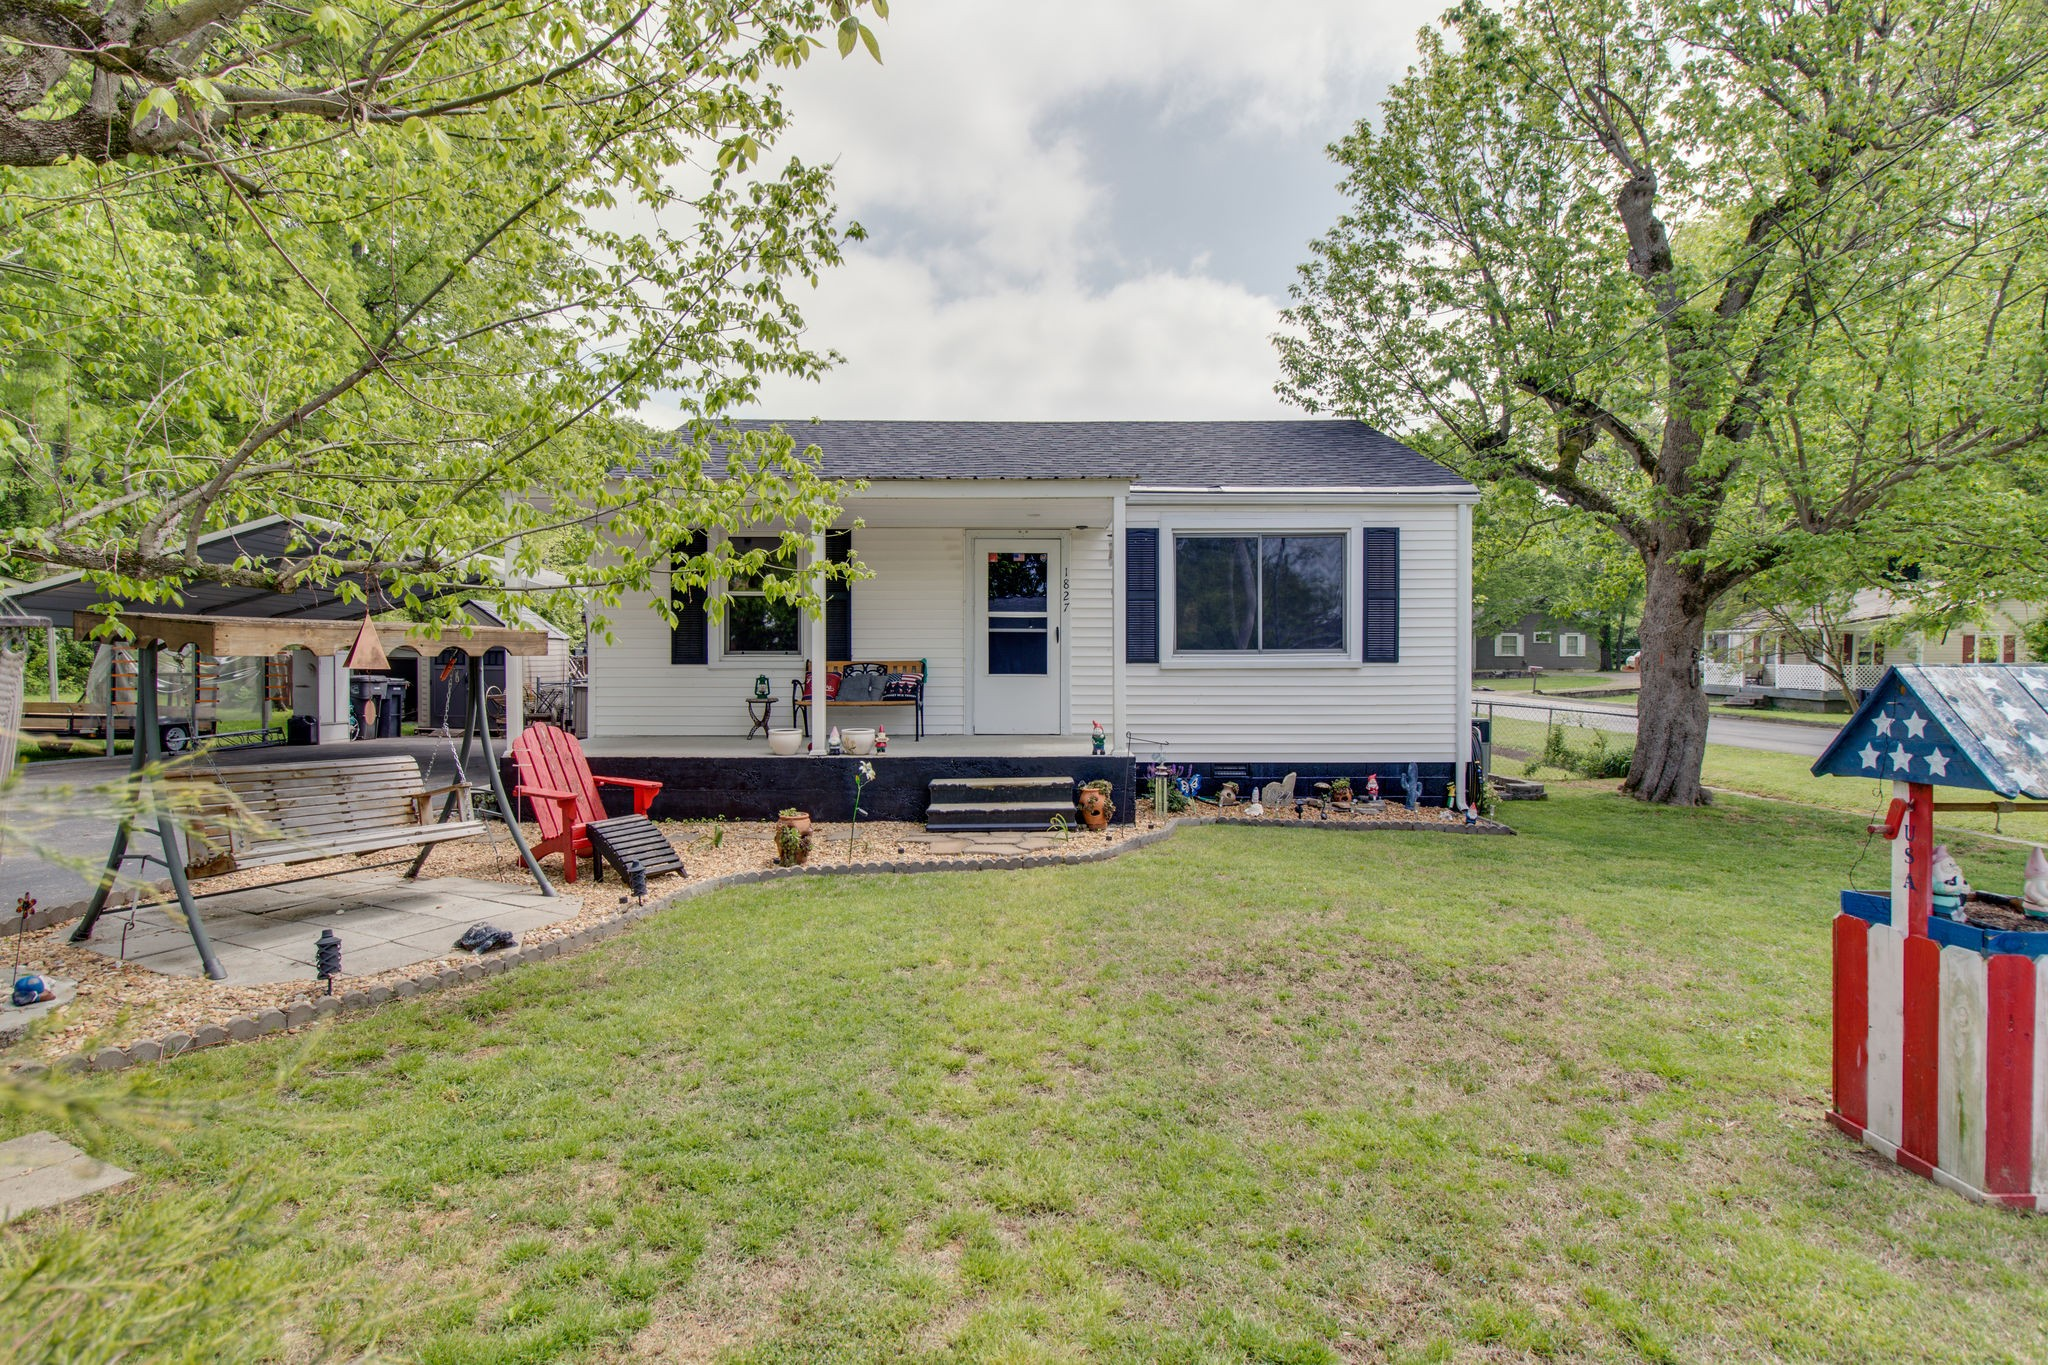 WANT TO LIVE ON A CORNER LEVEL LOT IN THE CITY,  JUST MINUTES TO EVERYTHING. Home is a very nice 3b/2ba. The shop/storage building is great storage. There is room for a garden. Quiet and peaceful. Immediate Occupancy! Call TODAY FOR YOUR PERSONAL SHOWING!